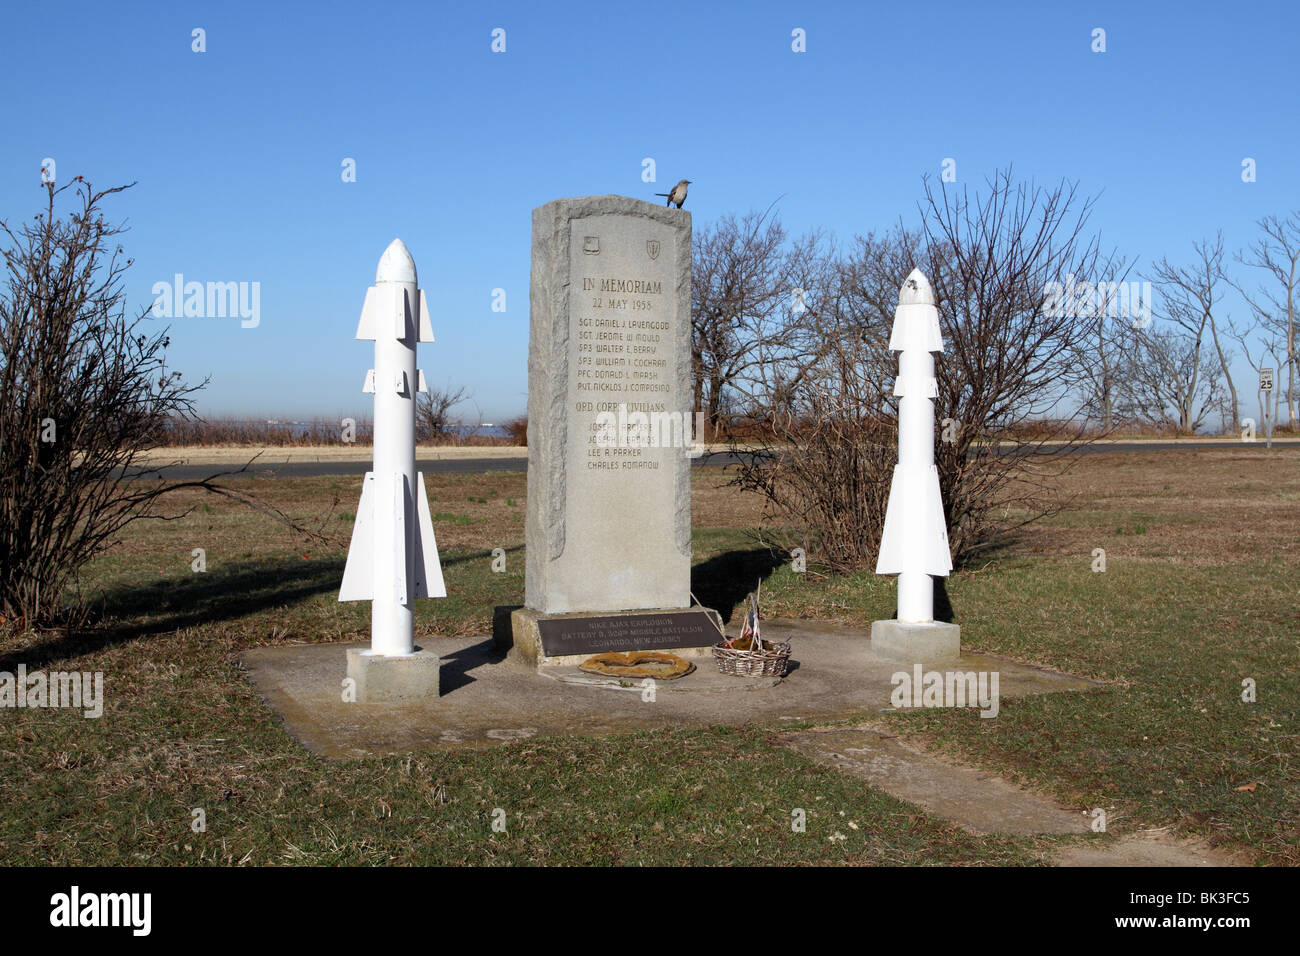 Memorial to Nike missile explosion, Fort Hancock, Sandy Hook, Gateway National Recreation Area - Stock Image